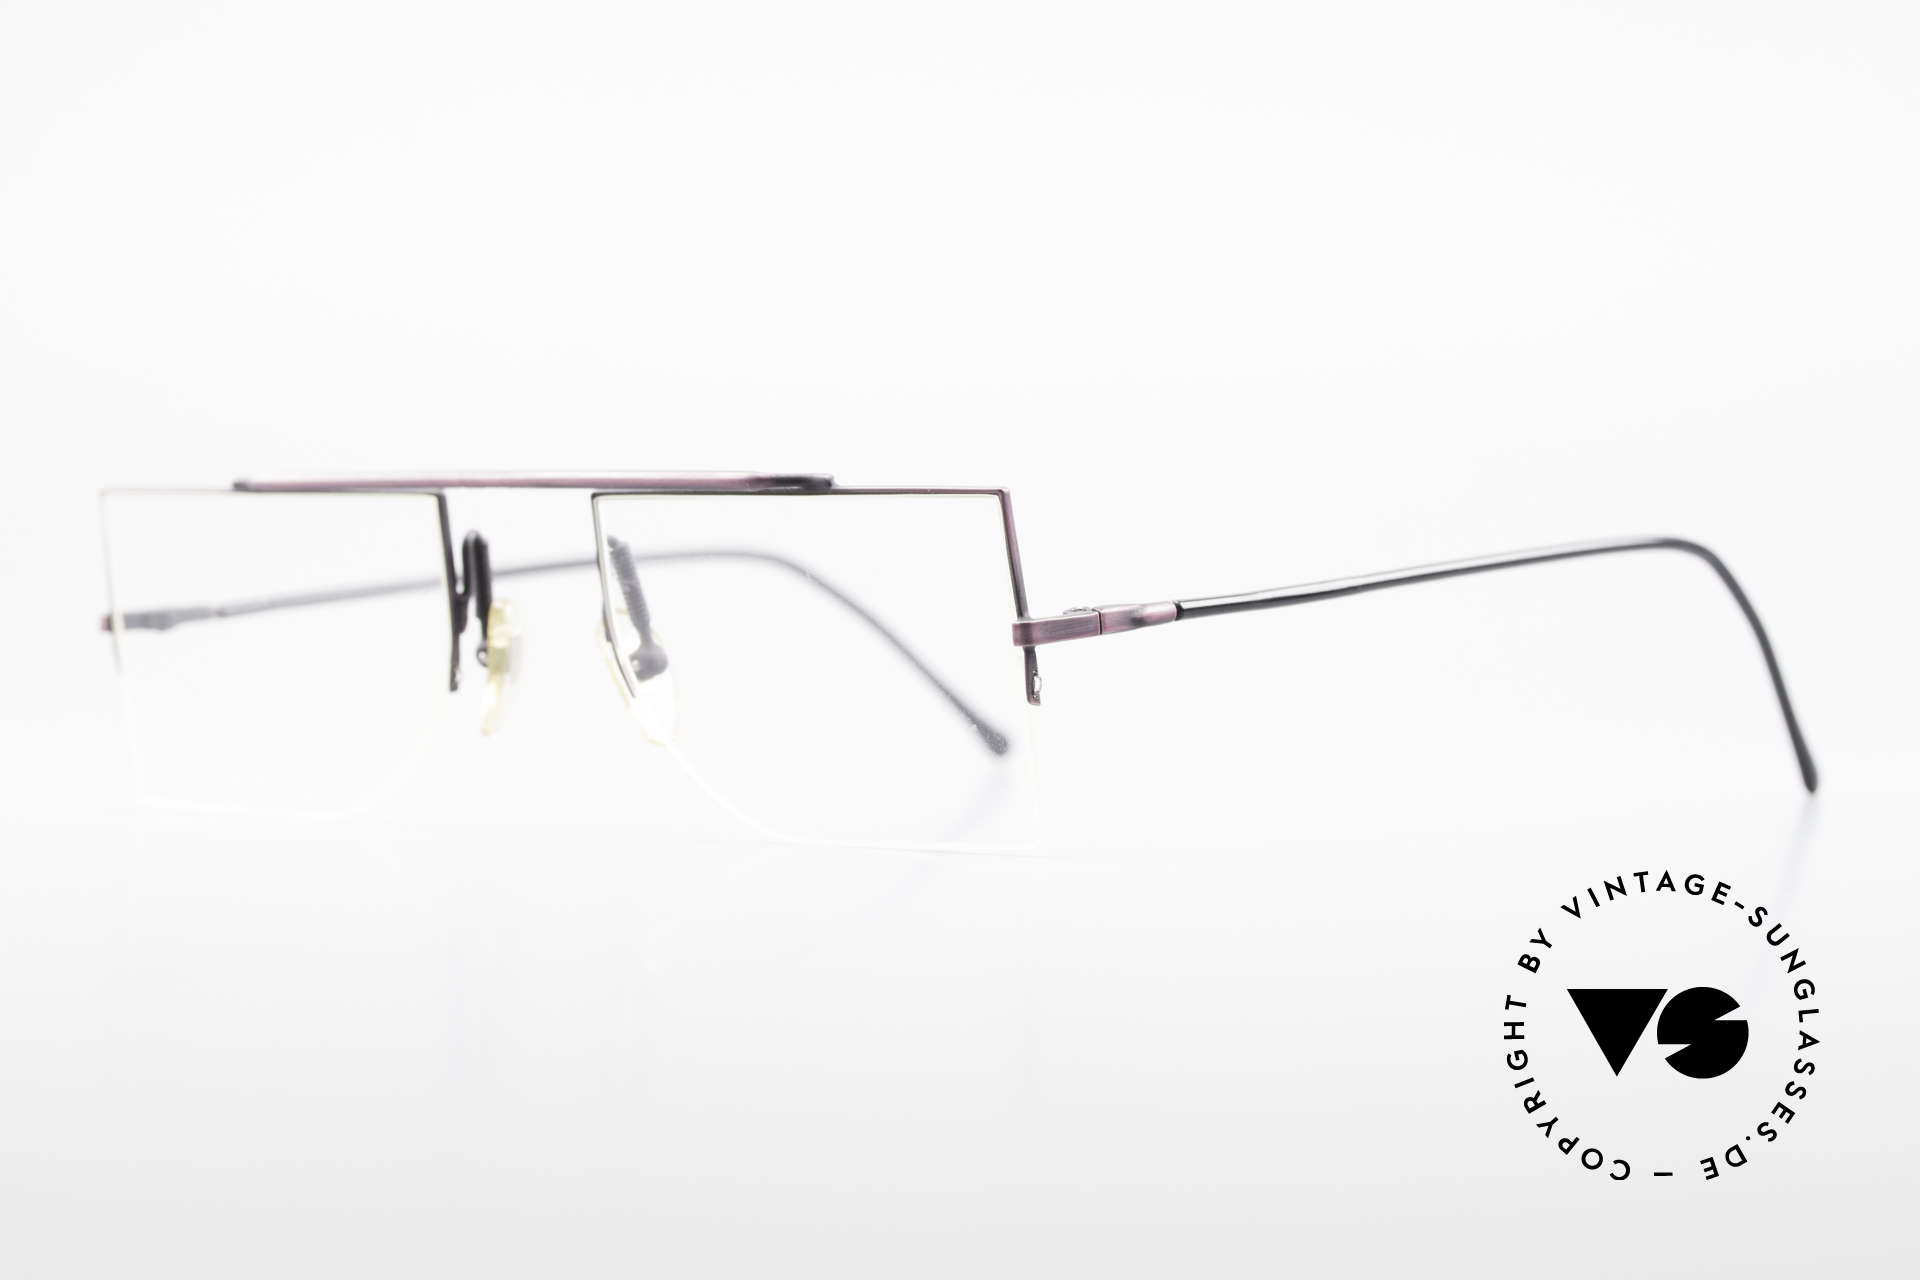 L.A. Eyeworks BURBANK 425 Square Vintage Eyeglasses, minimalist construction of simple geometric forms, Made for Men and Women